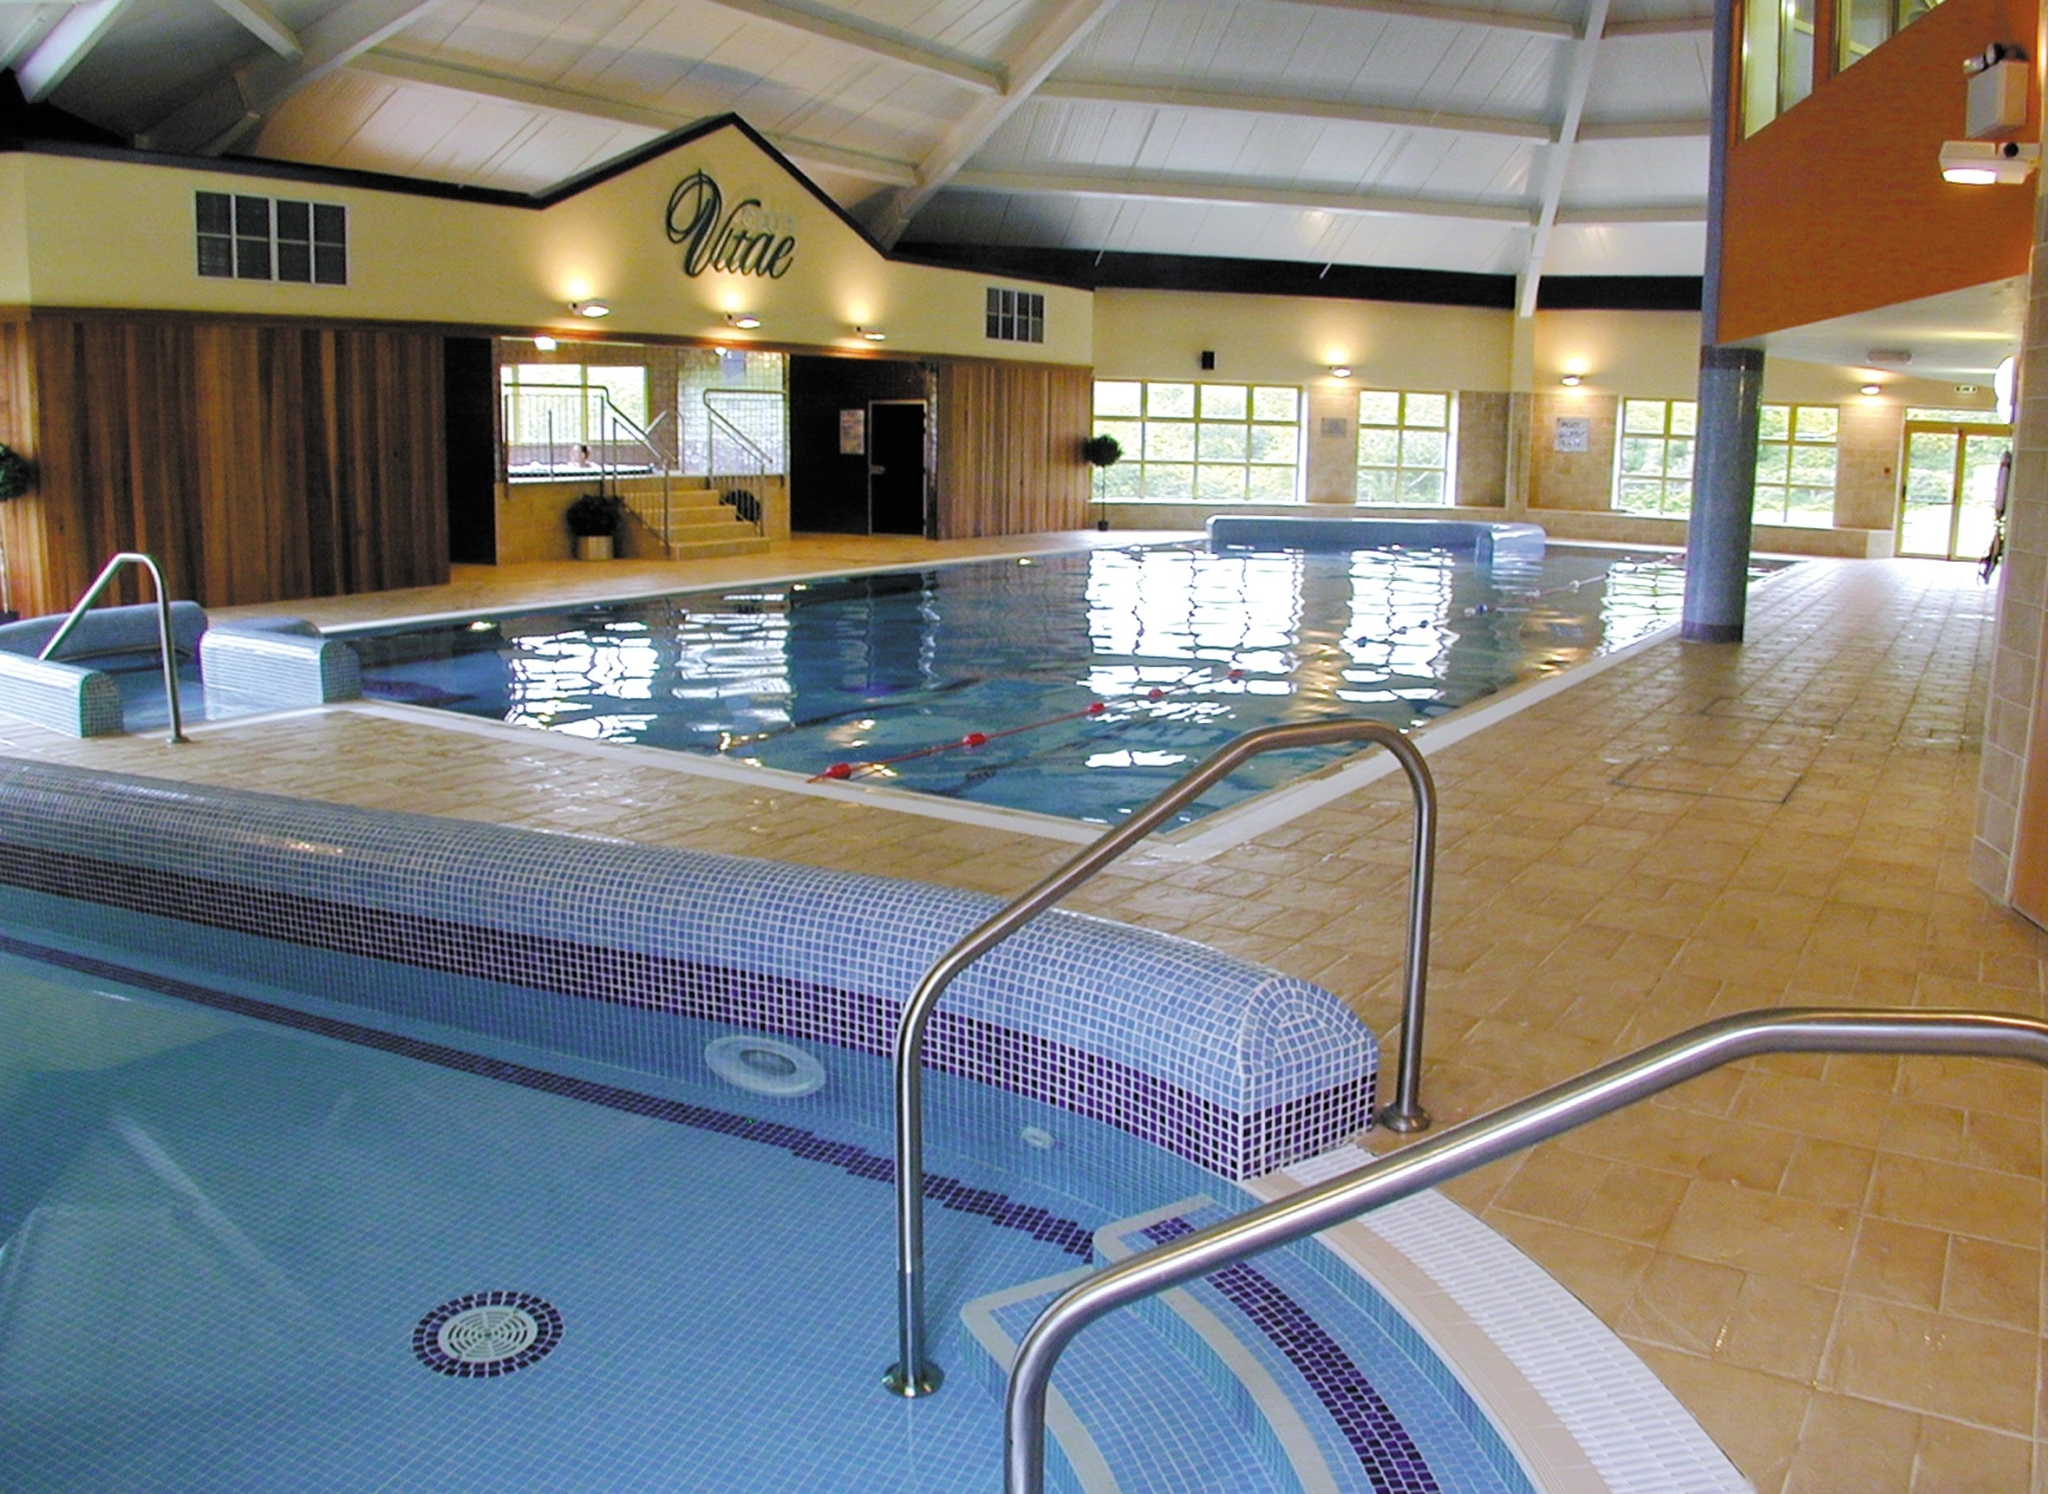 Maldron-Hotel-Wexford-leisure-centre-with-pool-and-childrens-pool